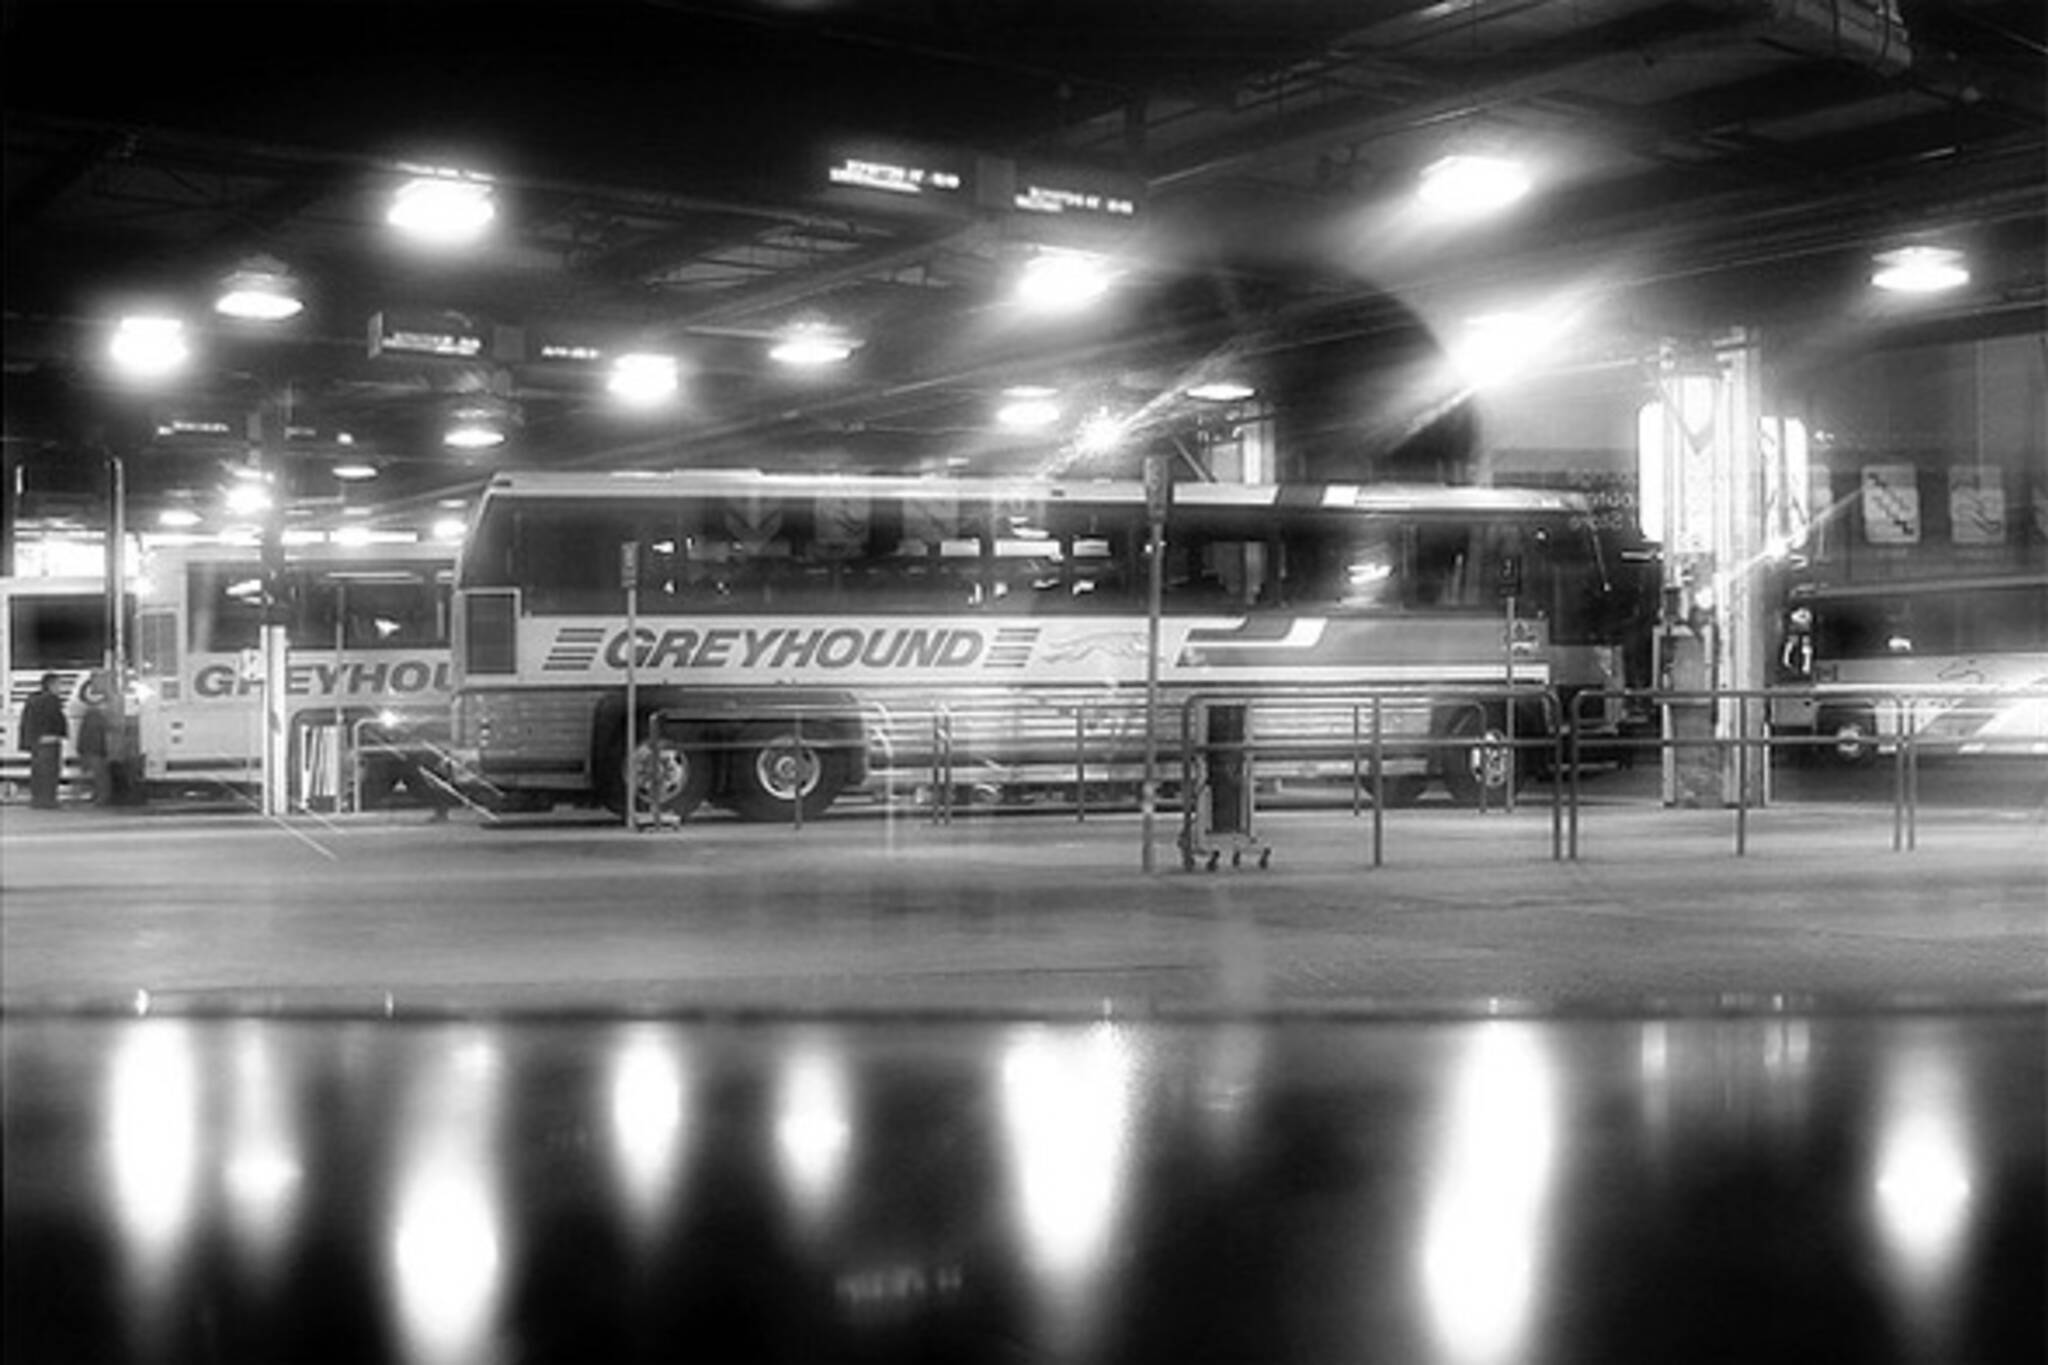 greyhound strike